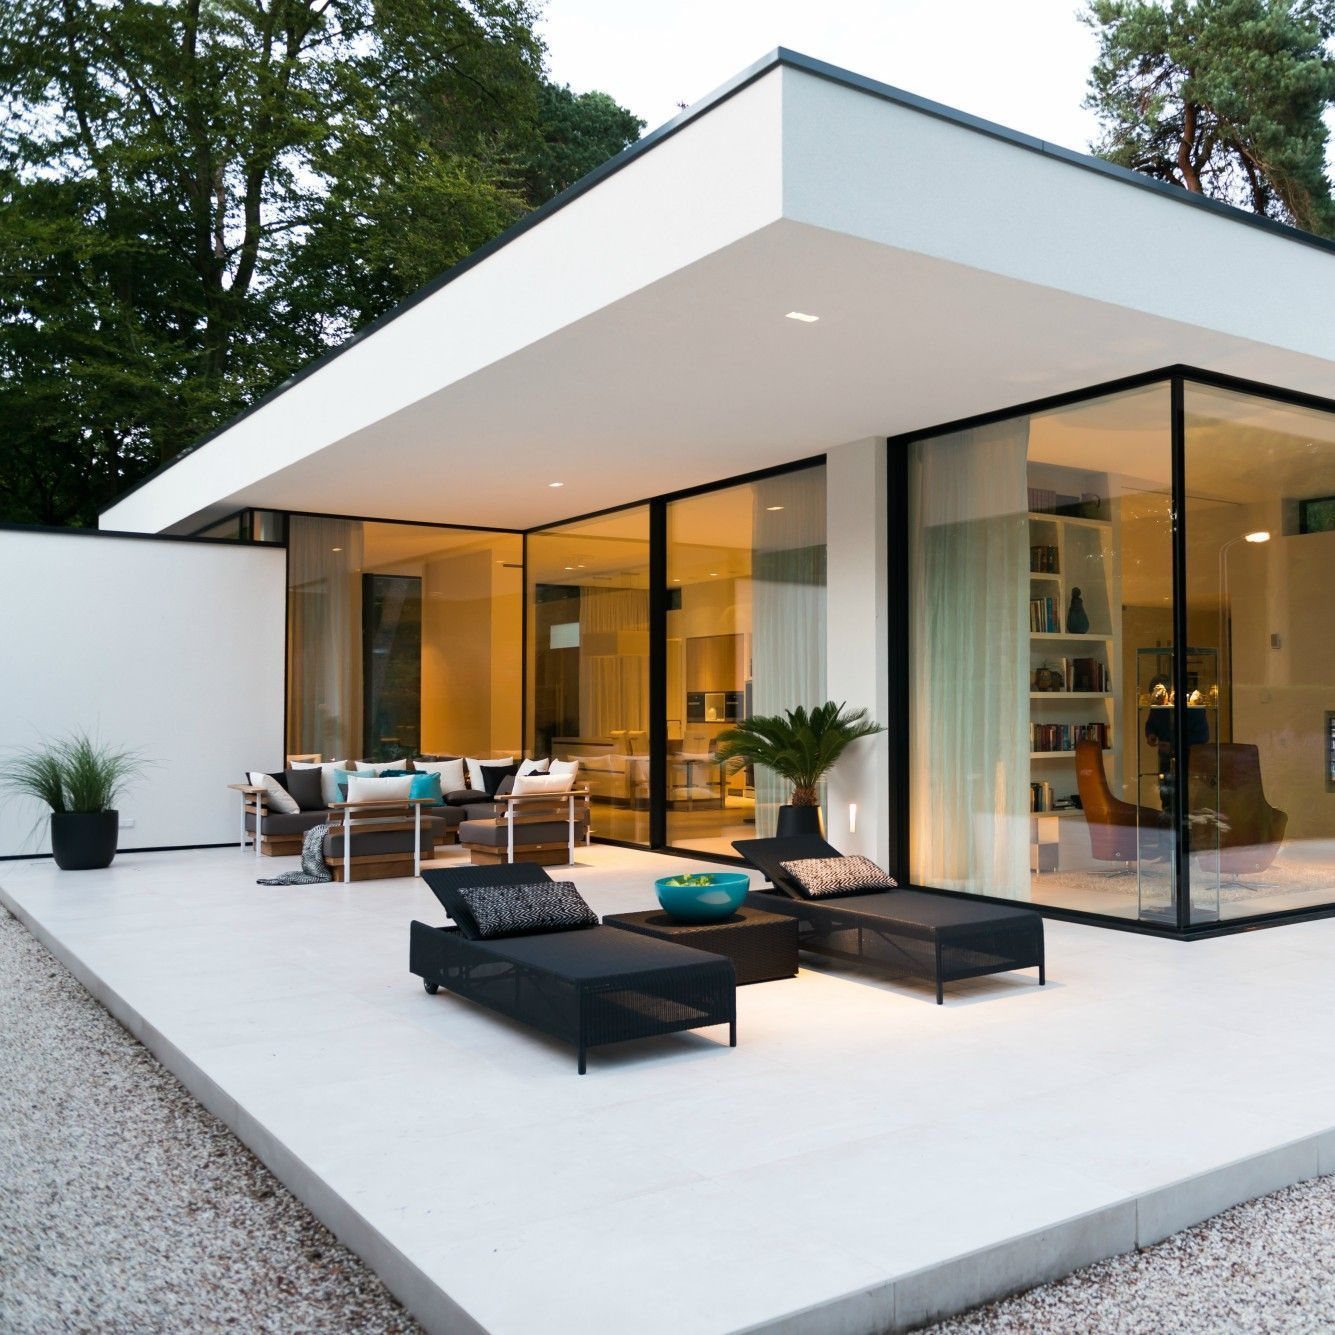 Homedesignideas Eu: Architecture: The Mirror Houses By Peter Pichler